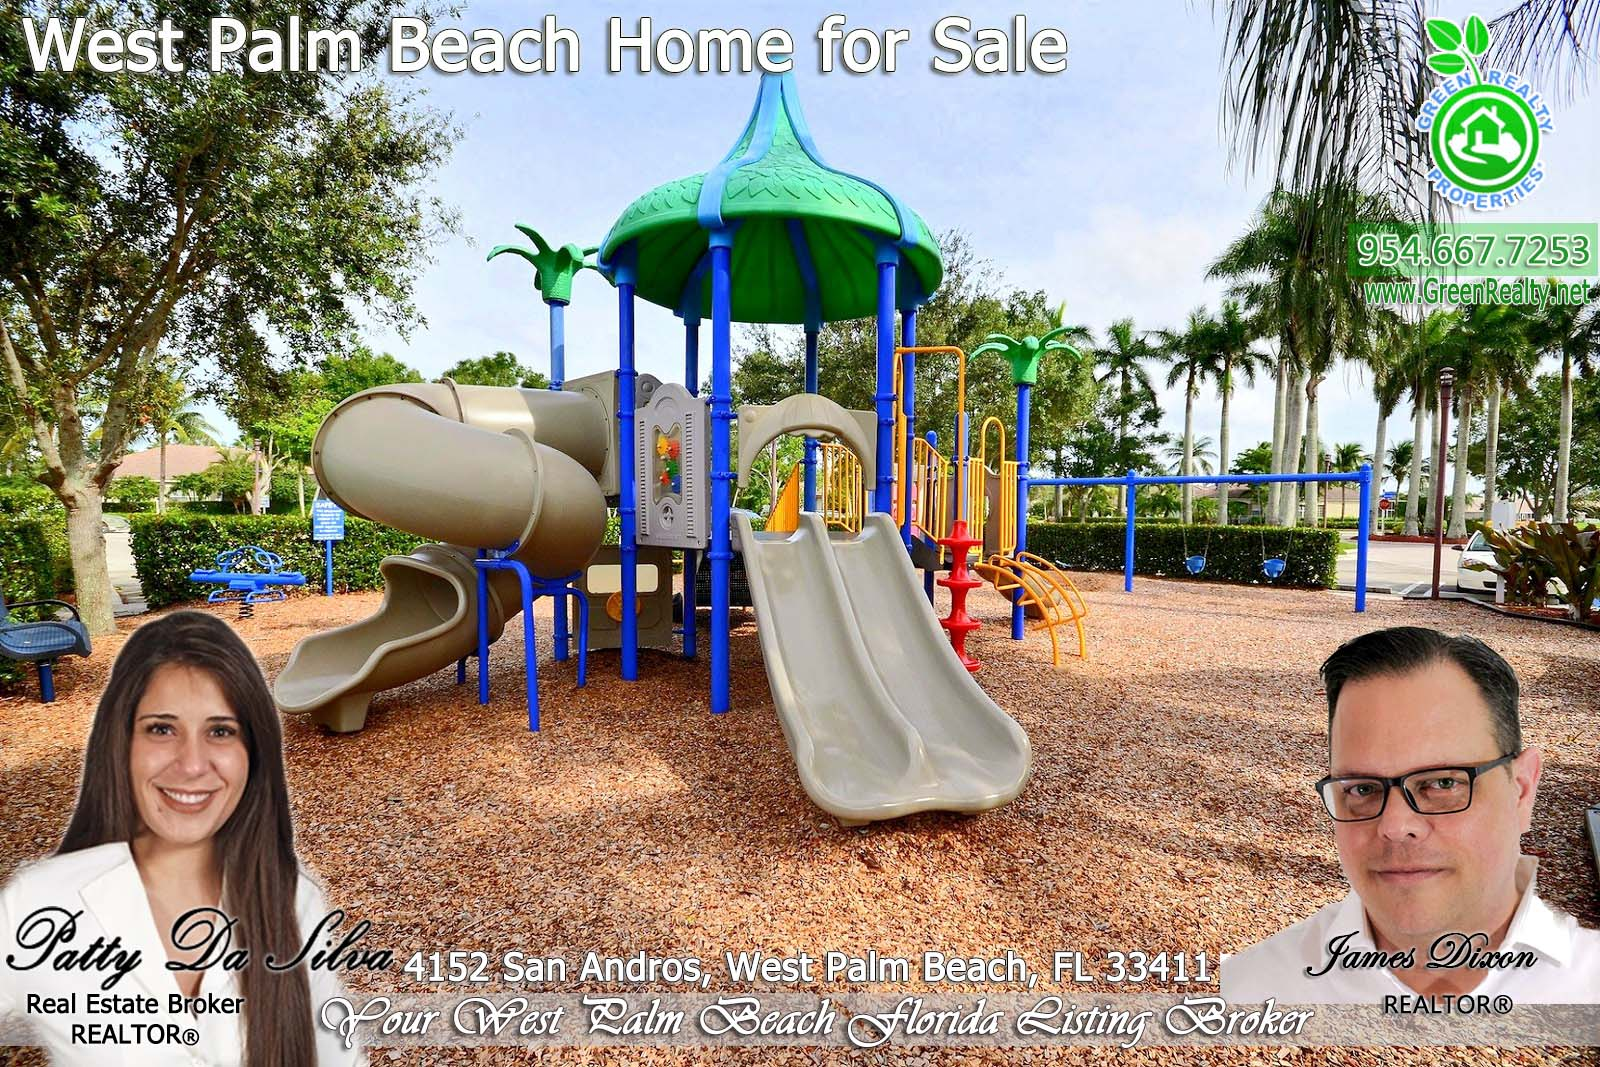 West Palm Beach Real Estate - 4152 San Andros (24)